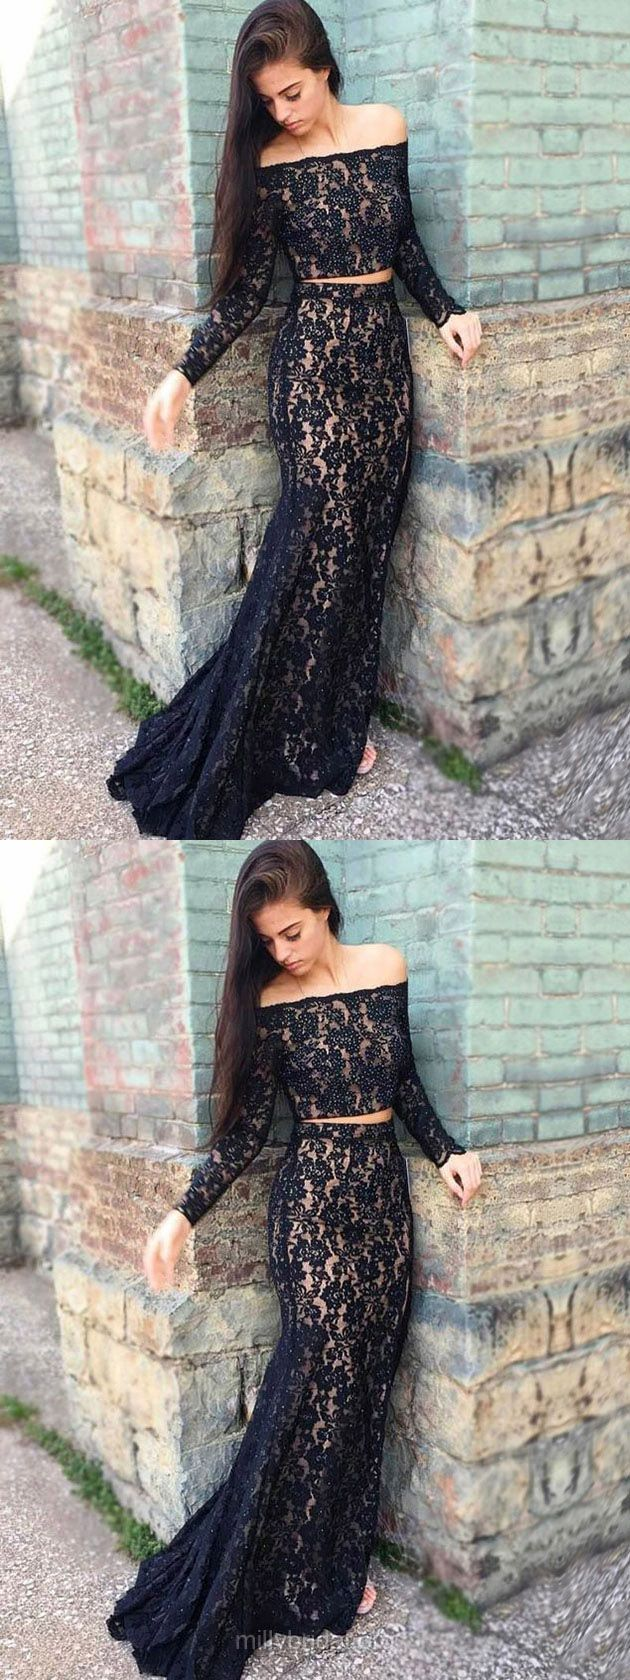 Lace Prom Dresses,Long Prom Dresses,Black Prom Dresses 2018,Trumpet/Mermaid Formal Prom Dresses Off-the-shoulder, Modest Evening Dresses Beading #blackdresses #eveningdresses